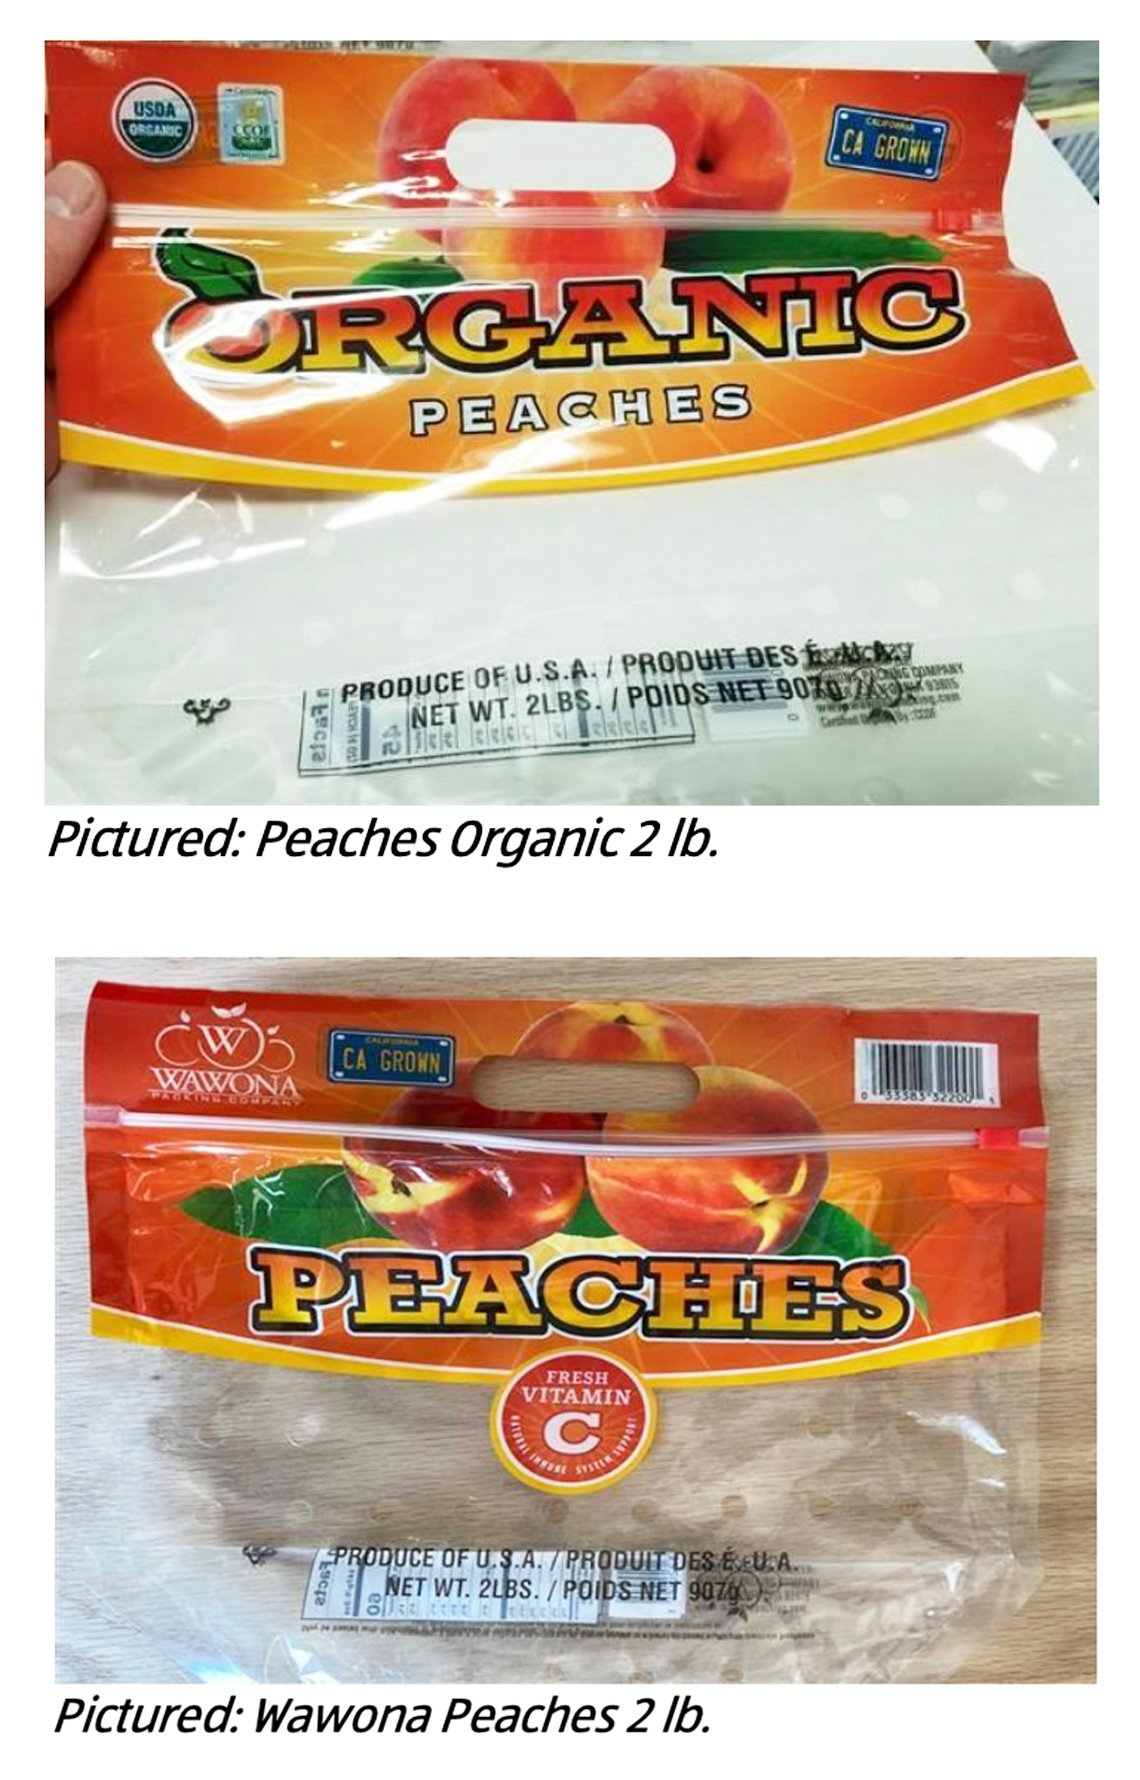 Empty bag that held peaches potentially contaminated by salmonella.